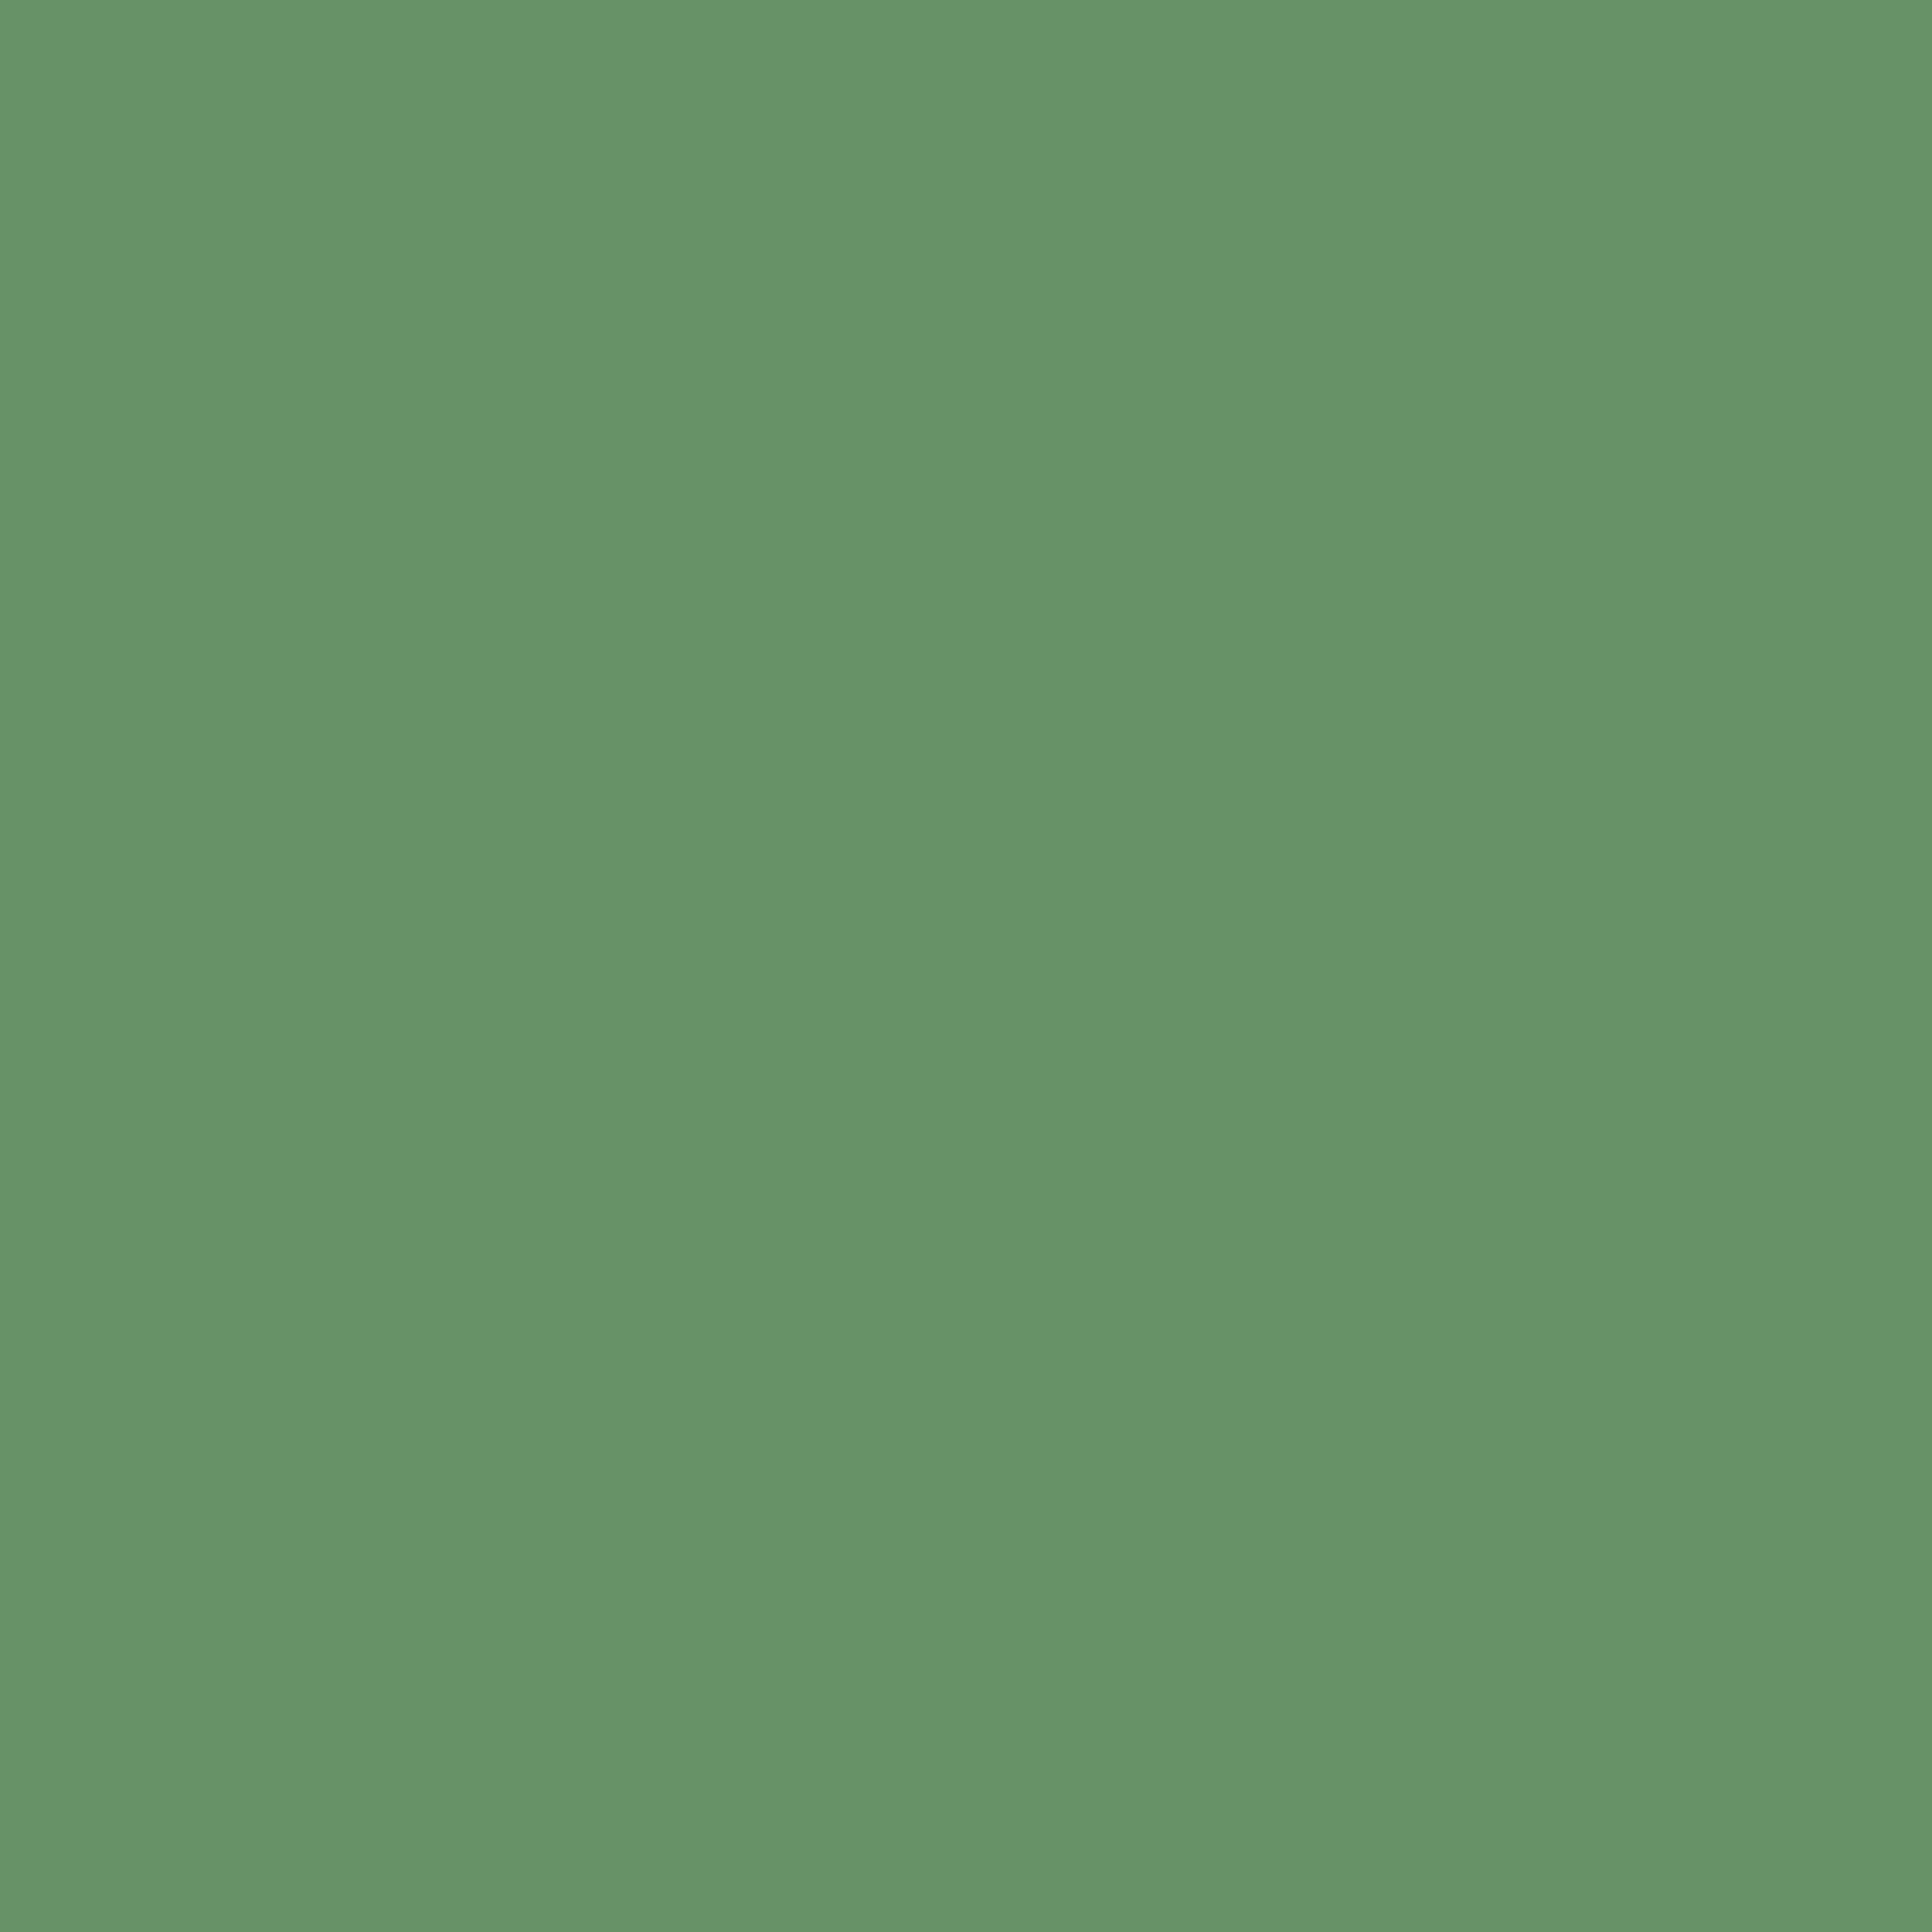 2732x2732 Russian Green Solid Color Background